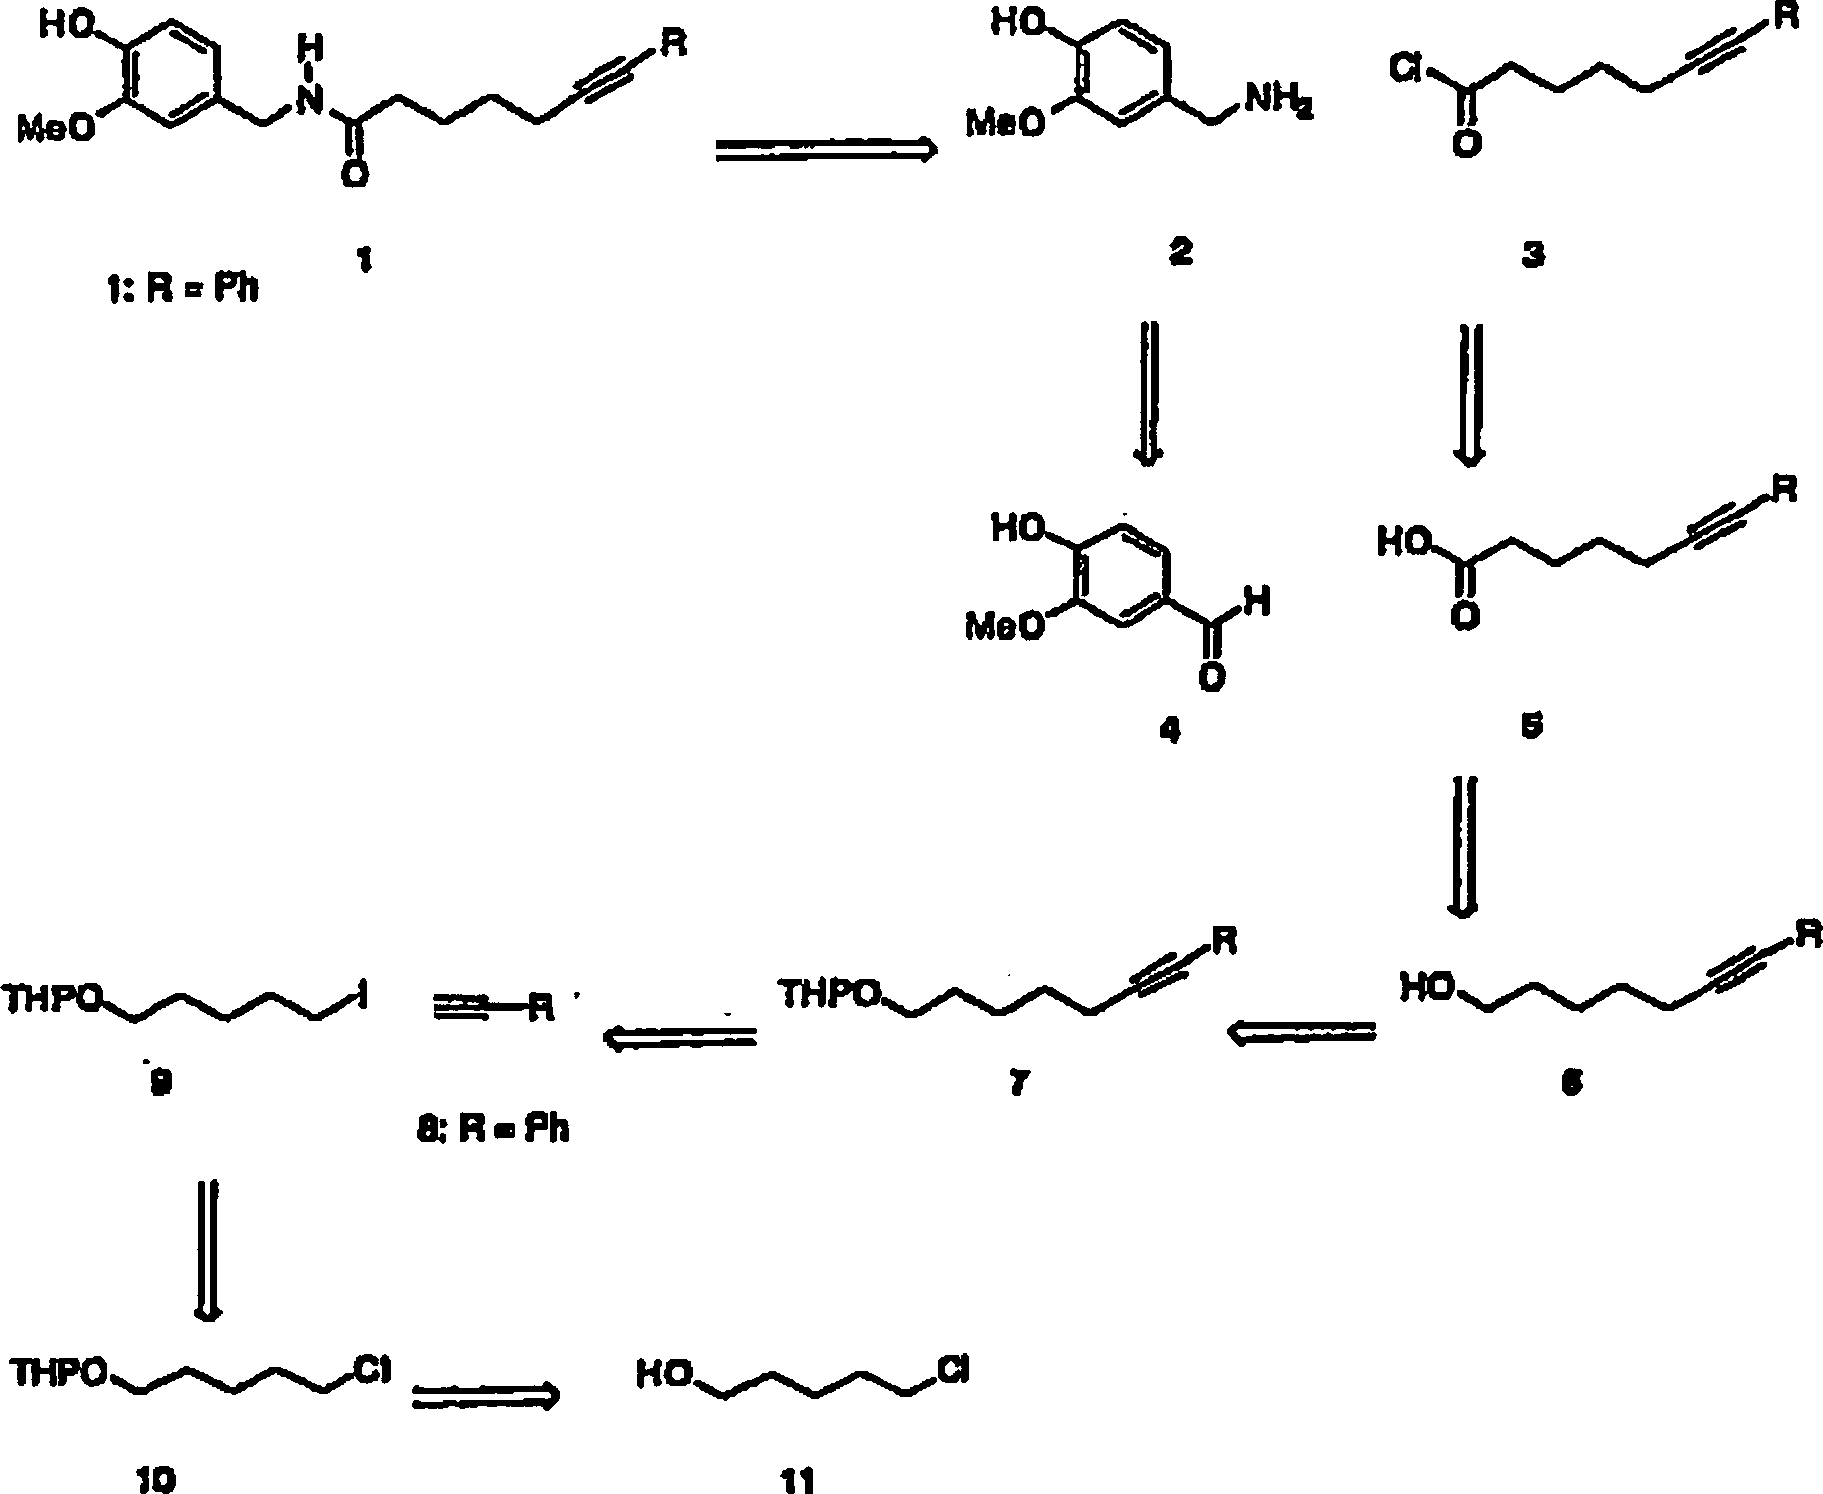 DE602004010164T2 - Capsaicin derivatives and their